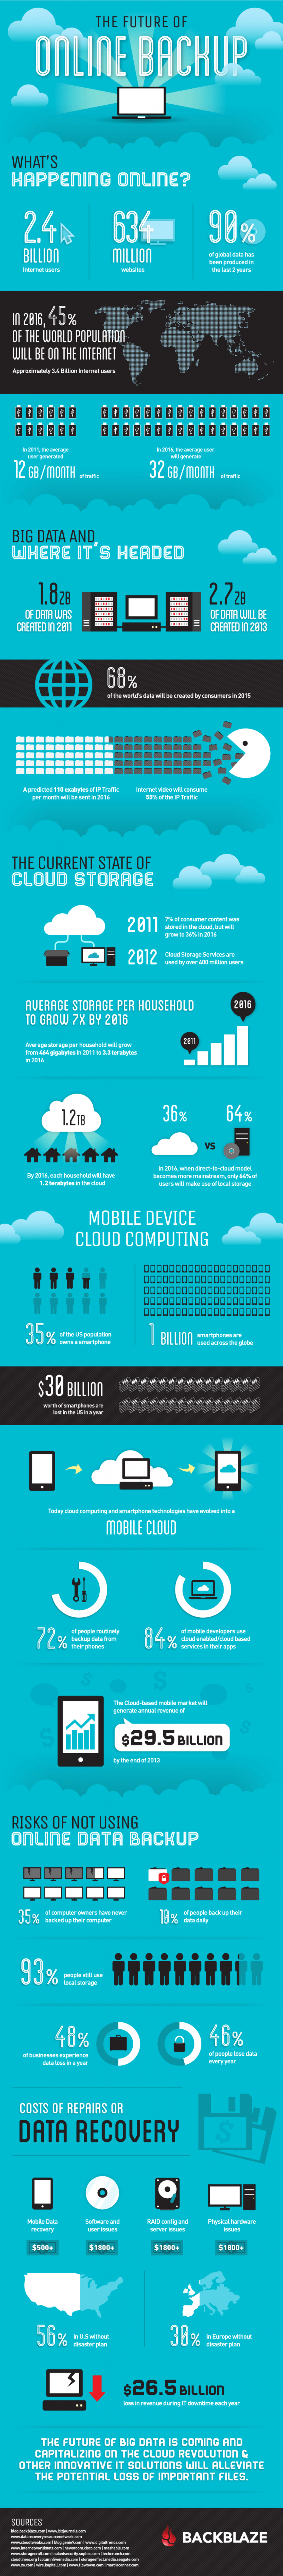 The Future of Online Backup Infographic